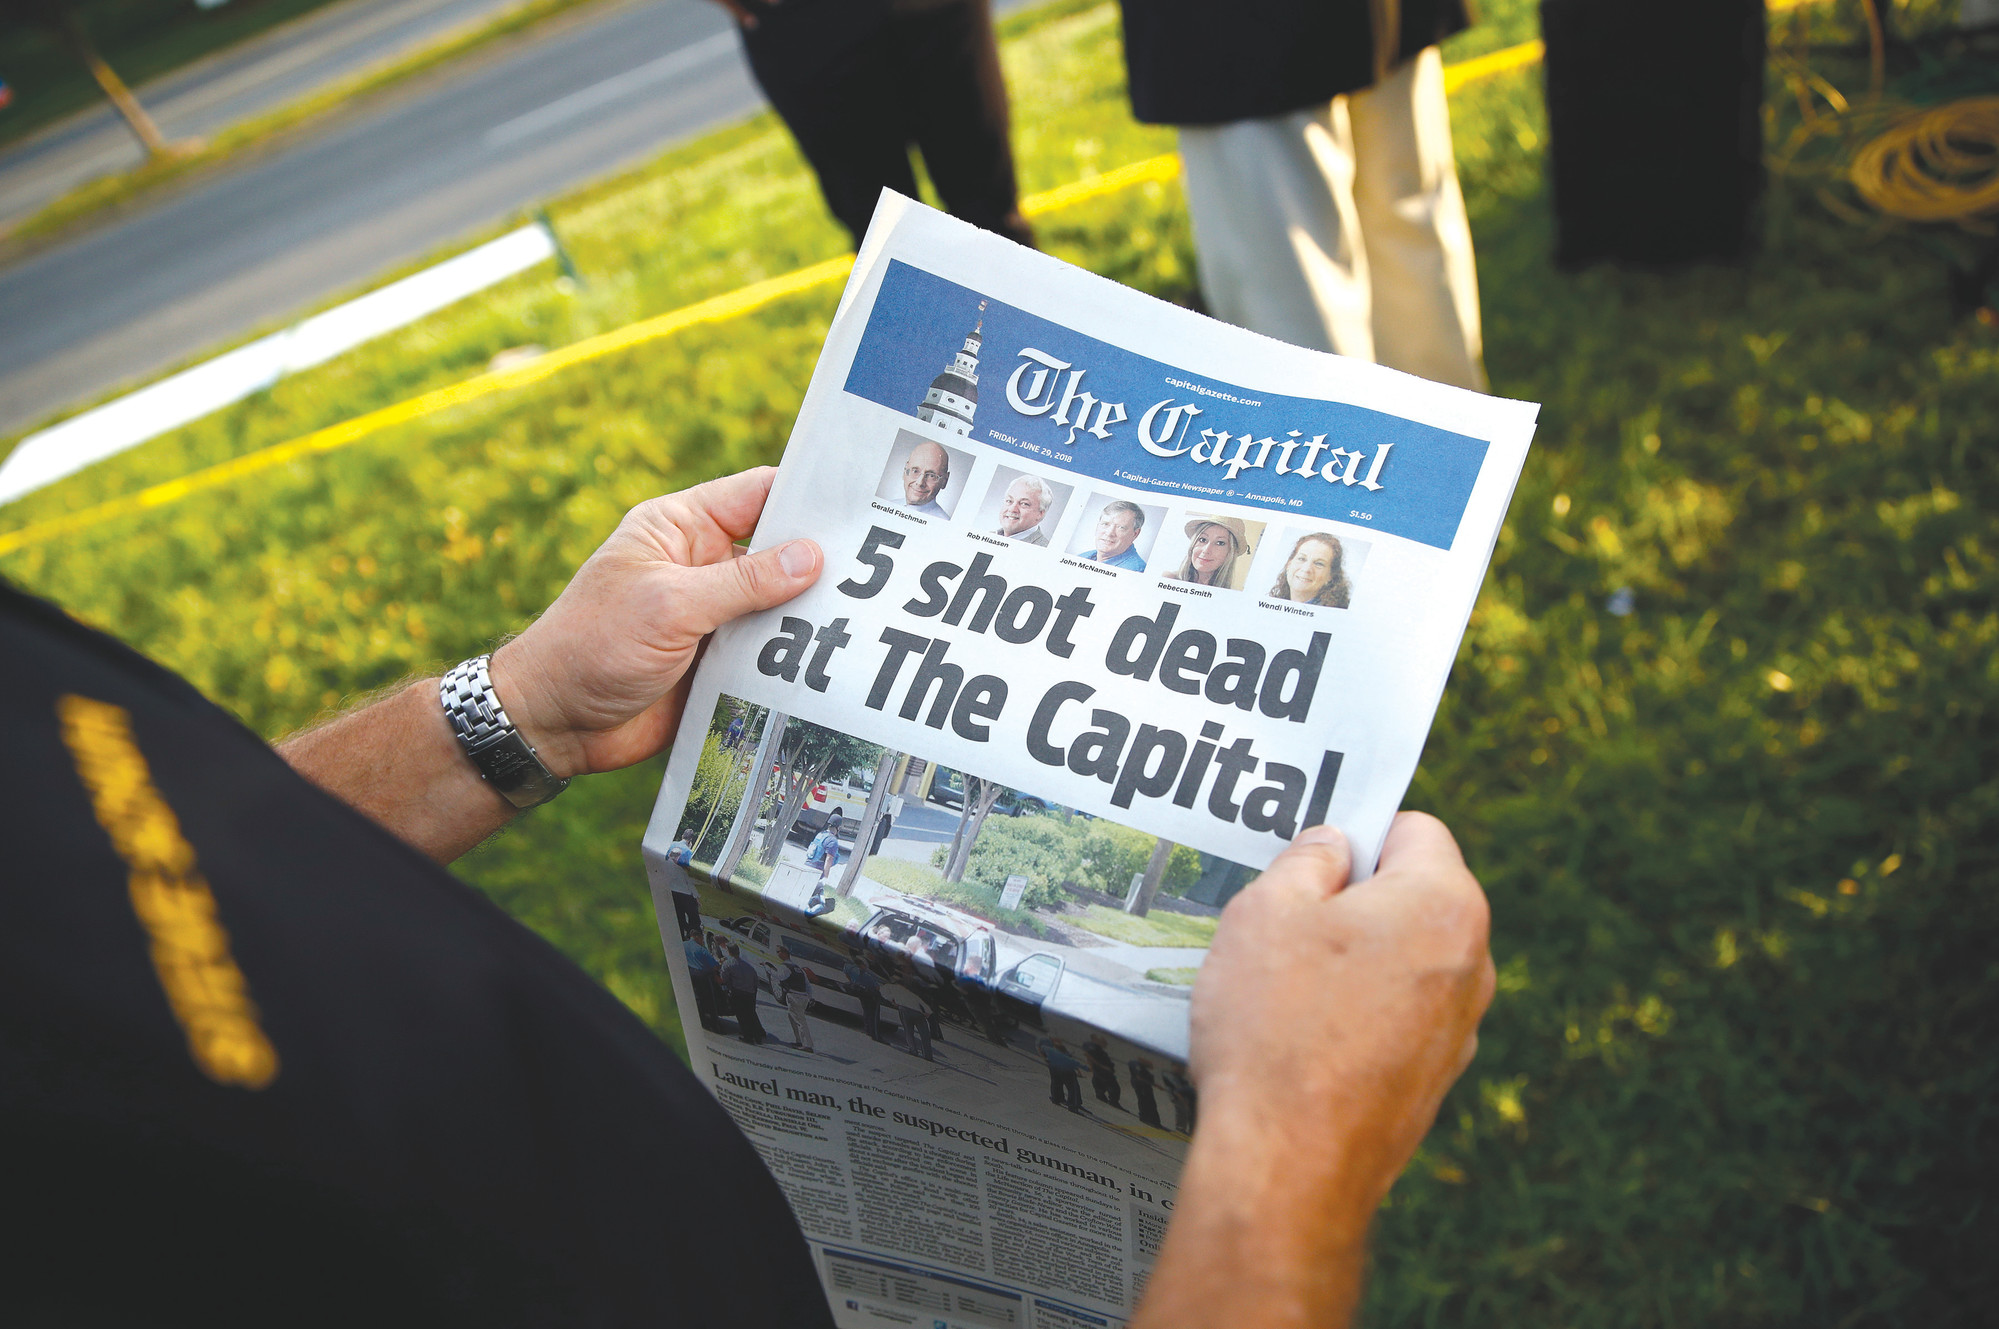 Maryland newspaper says it received threats following shooting